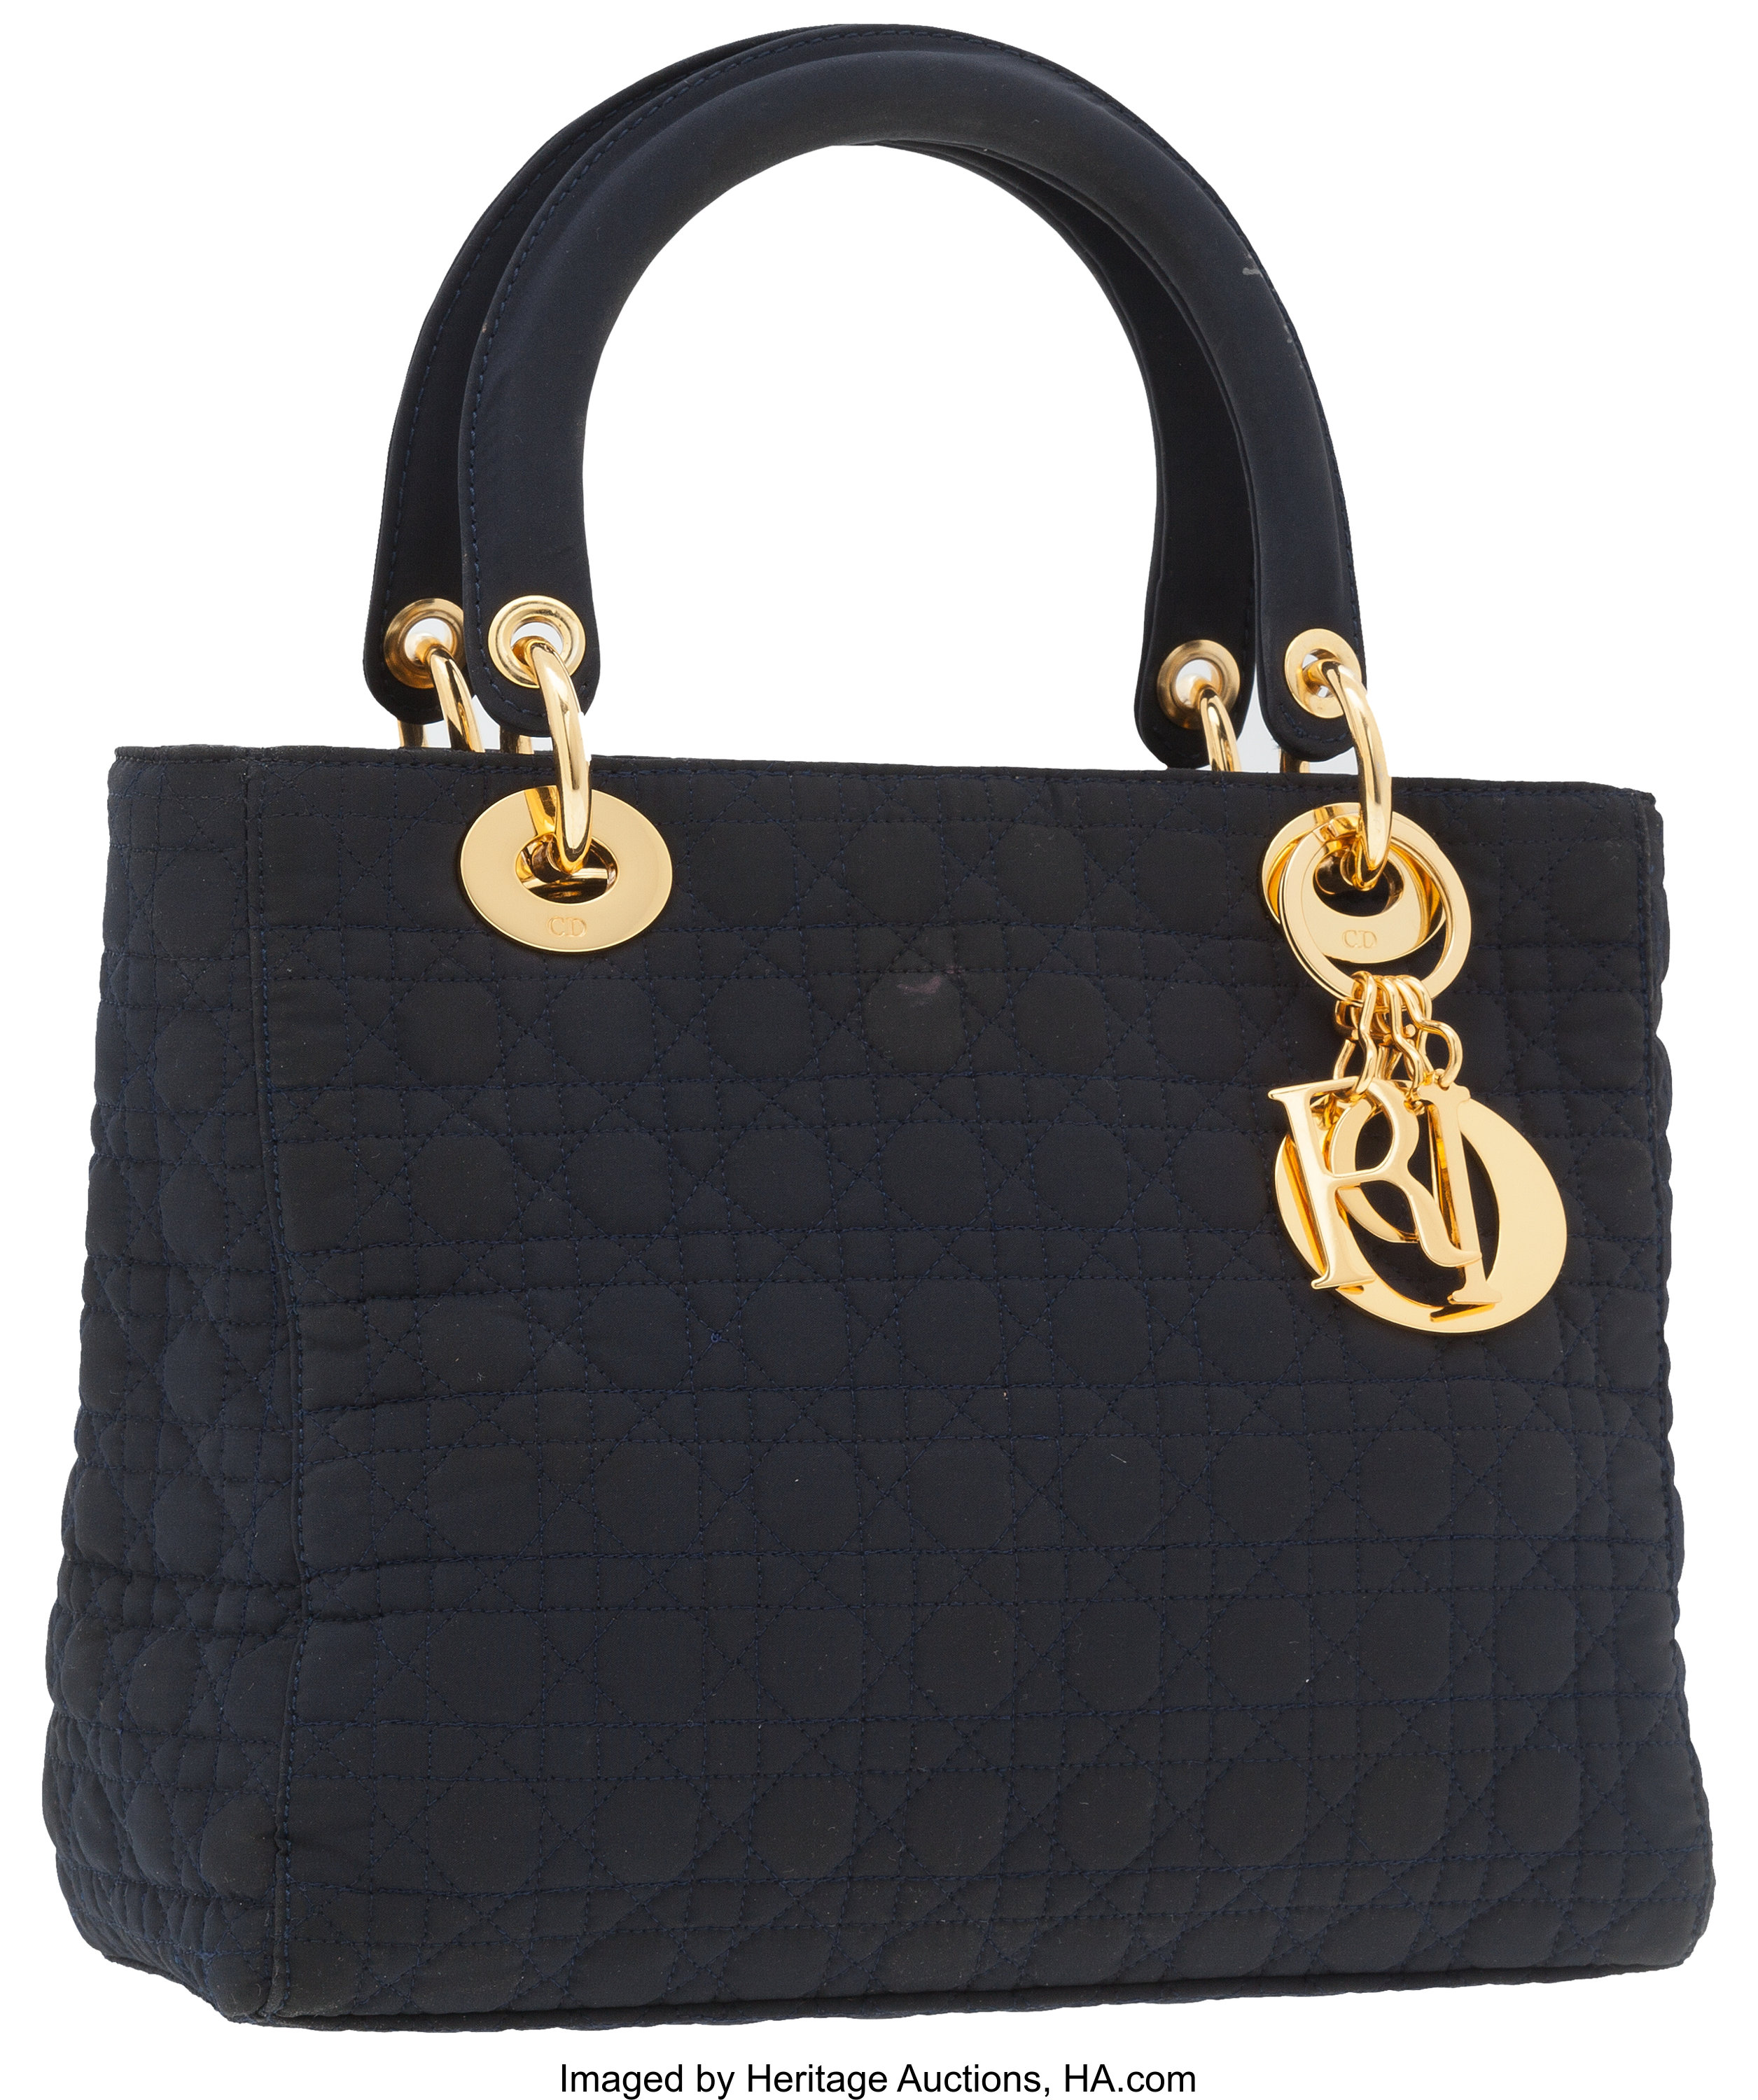 8dabe68907f Christian Dior Navy Blue Microfiber Cannage Lady Dior Tote Bag. ... | Lot  #76034 | Heritage Auctions